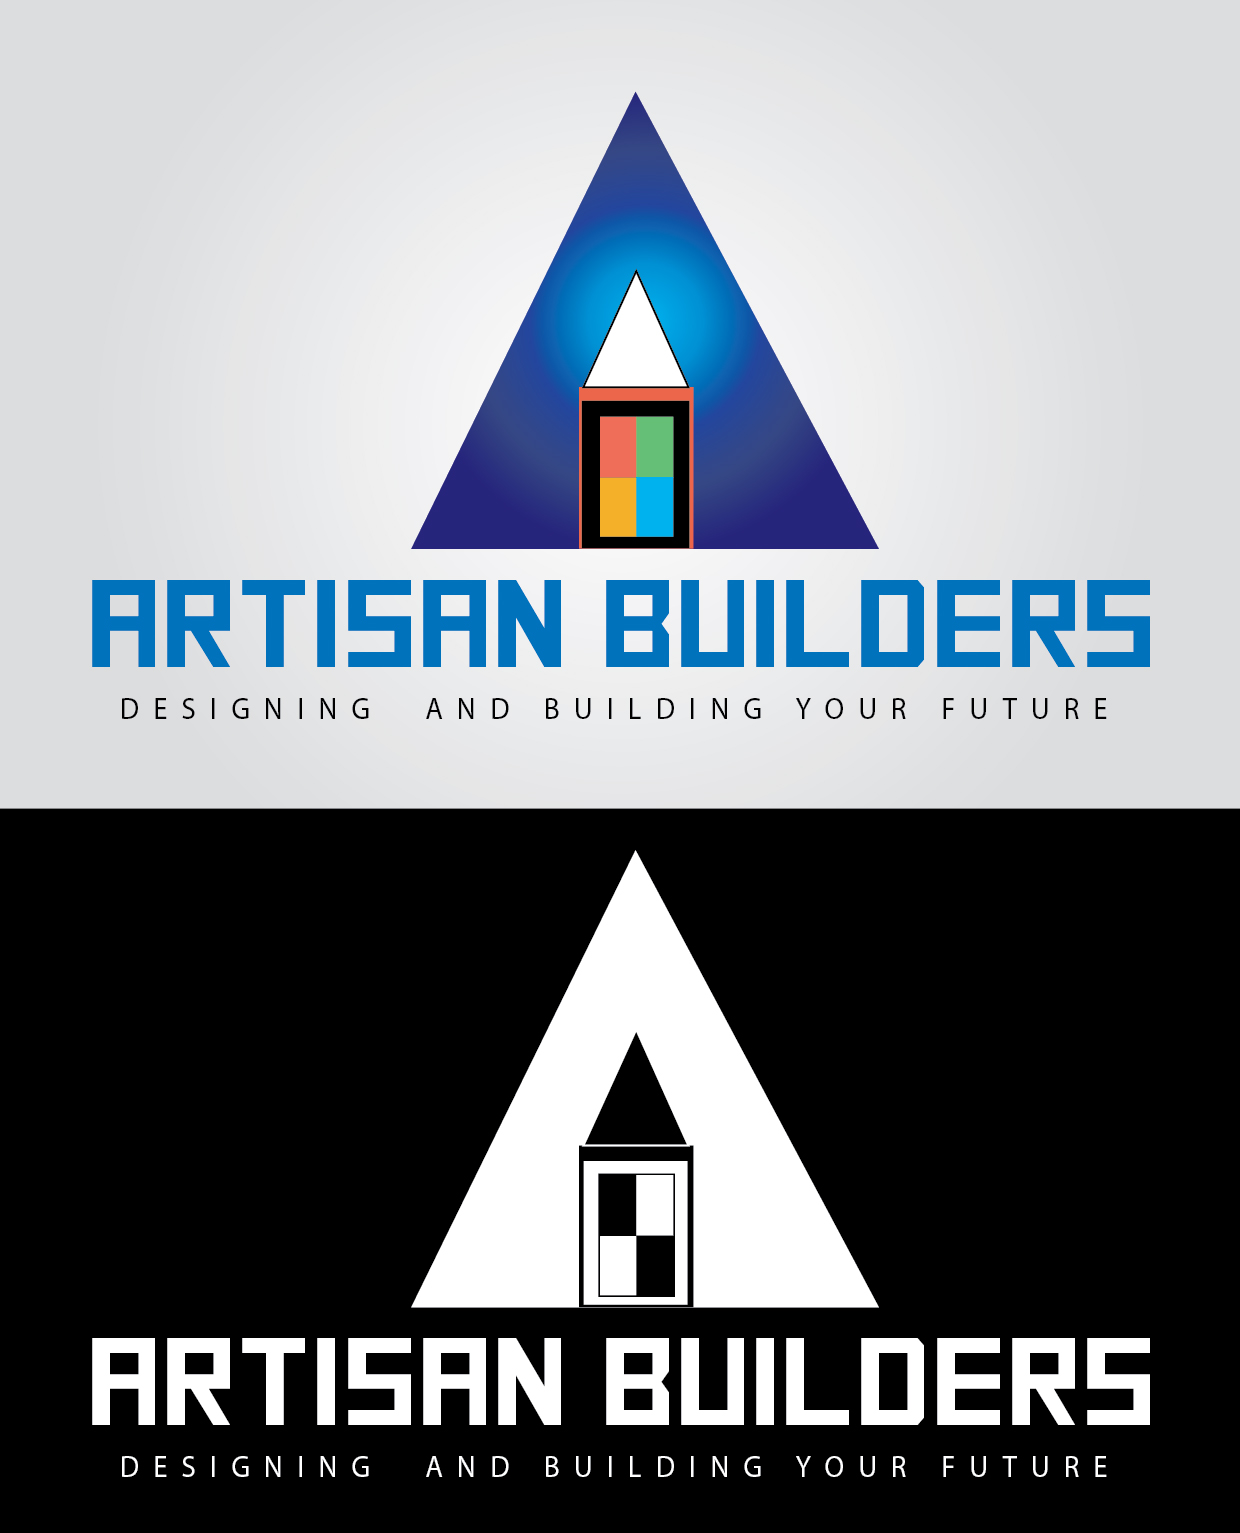 Logo Design by mediaproductionart - Entry No. 101 in the Logo Design Contest Captivating Logo Design for Artisan Builders.